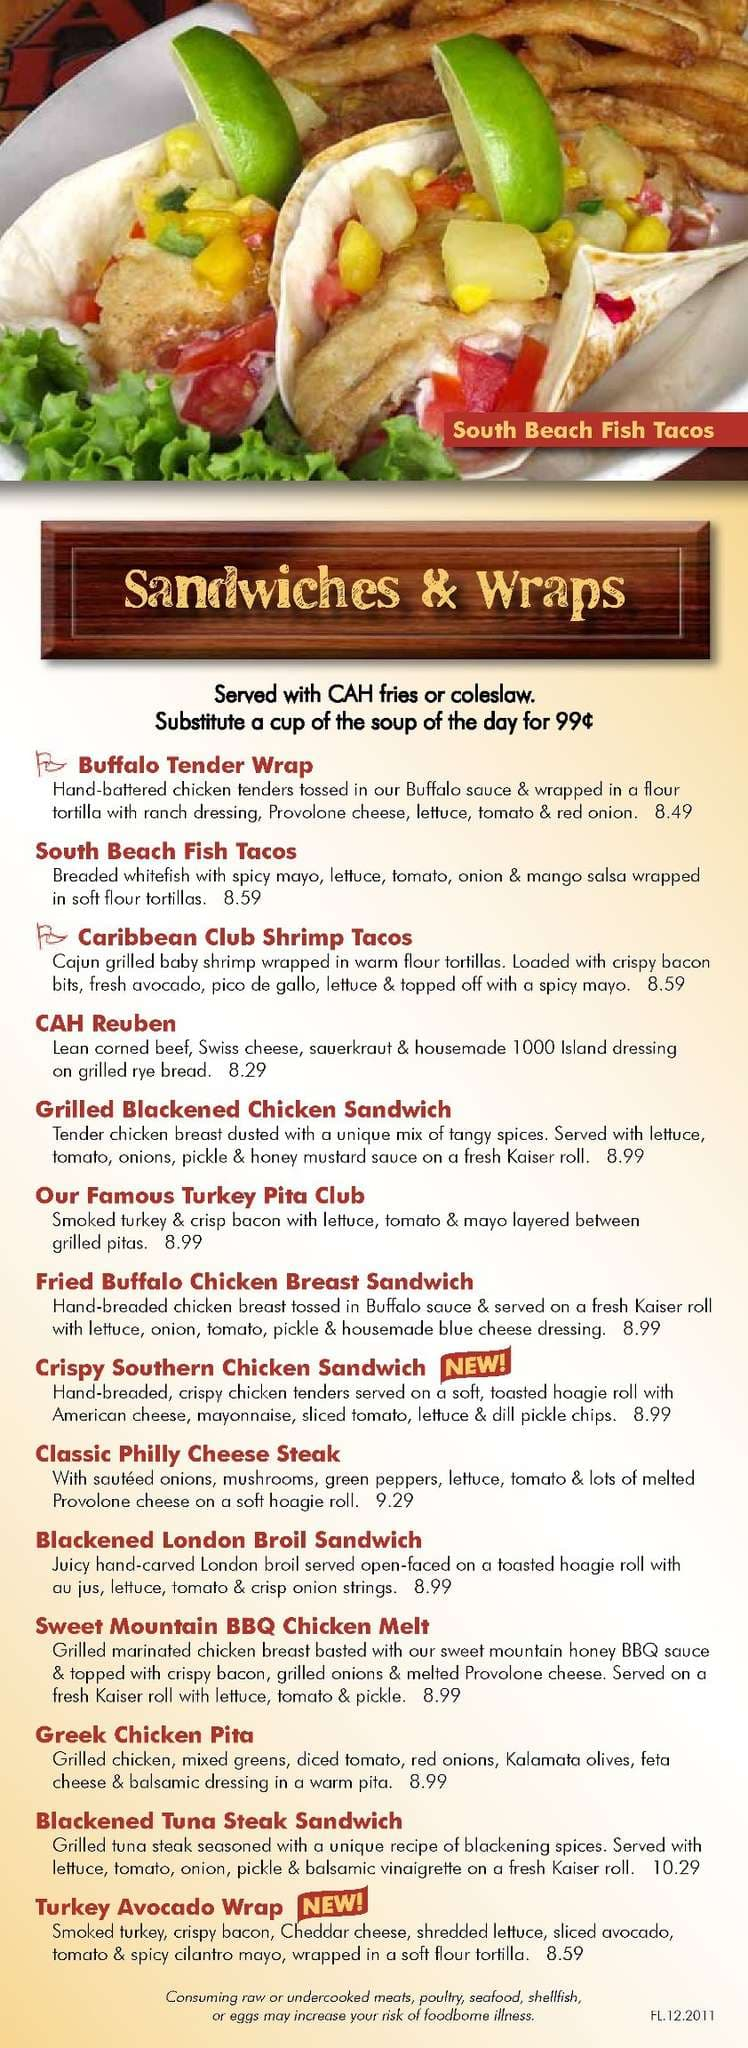 The Restaurant Information Including The Carolina Ale House Menu Items And  Prices May Have Been Modified Since The Last Website Update.